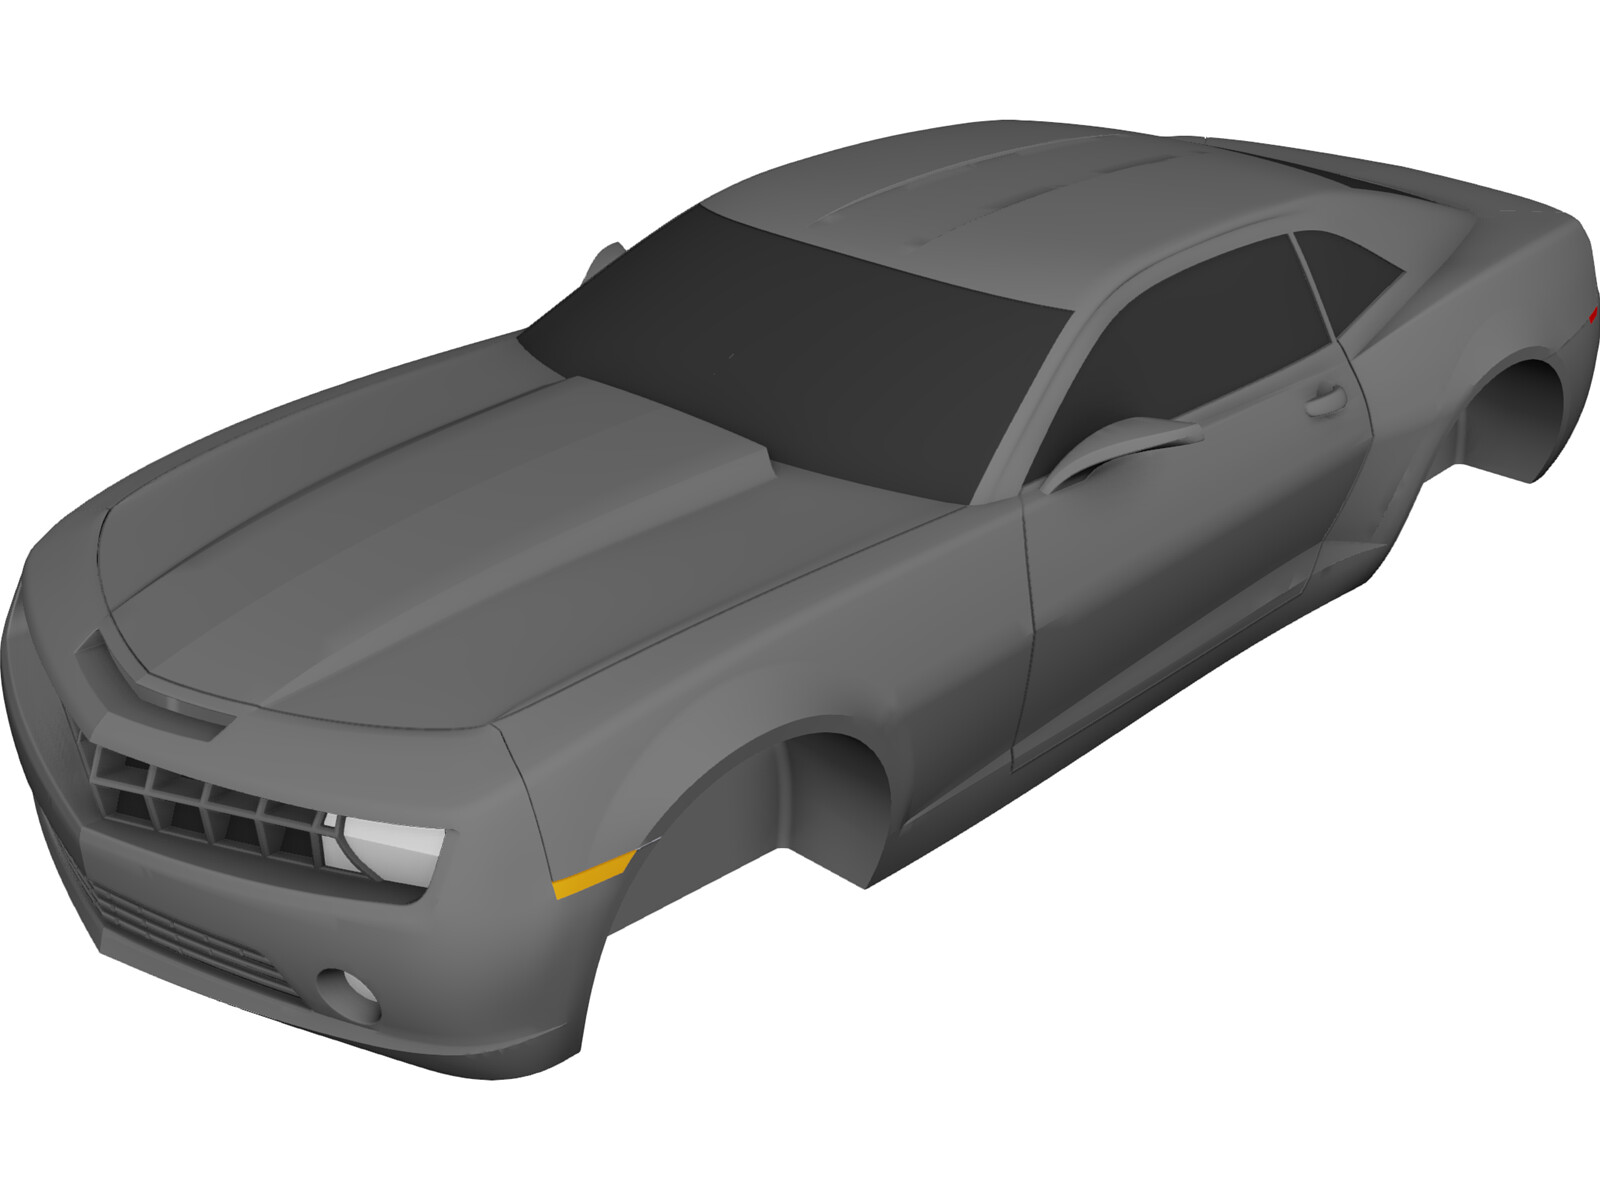 Used Cars Macomb Il Chevrolet Camaro Body (2010) 3D CAD Model Download - 3D CAD Browser